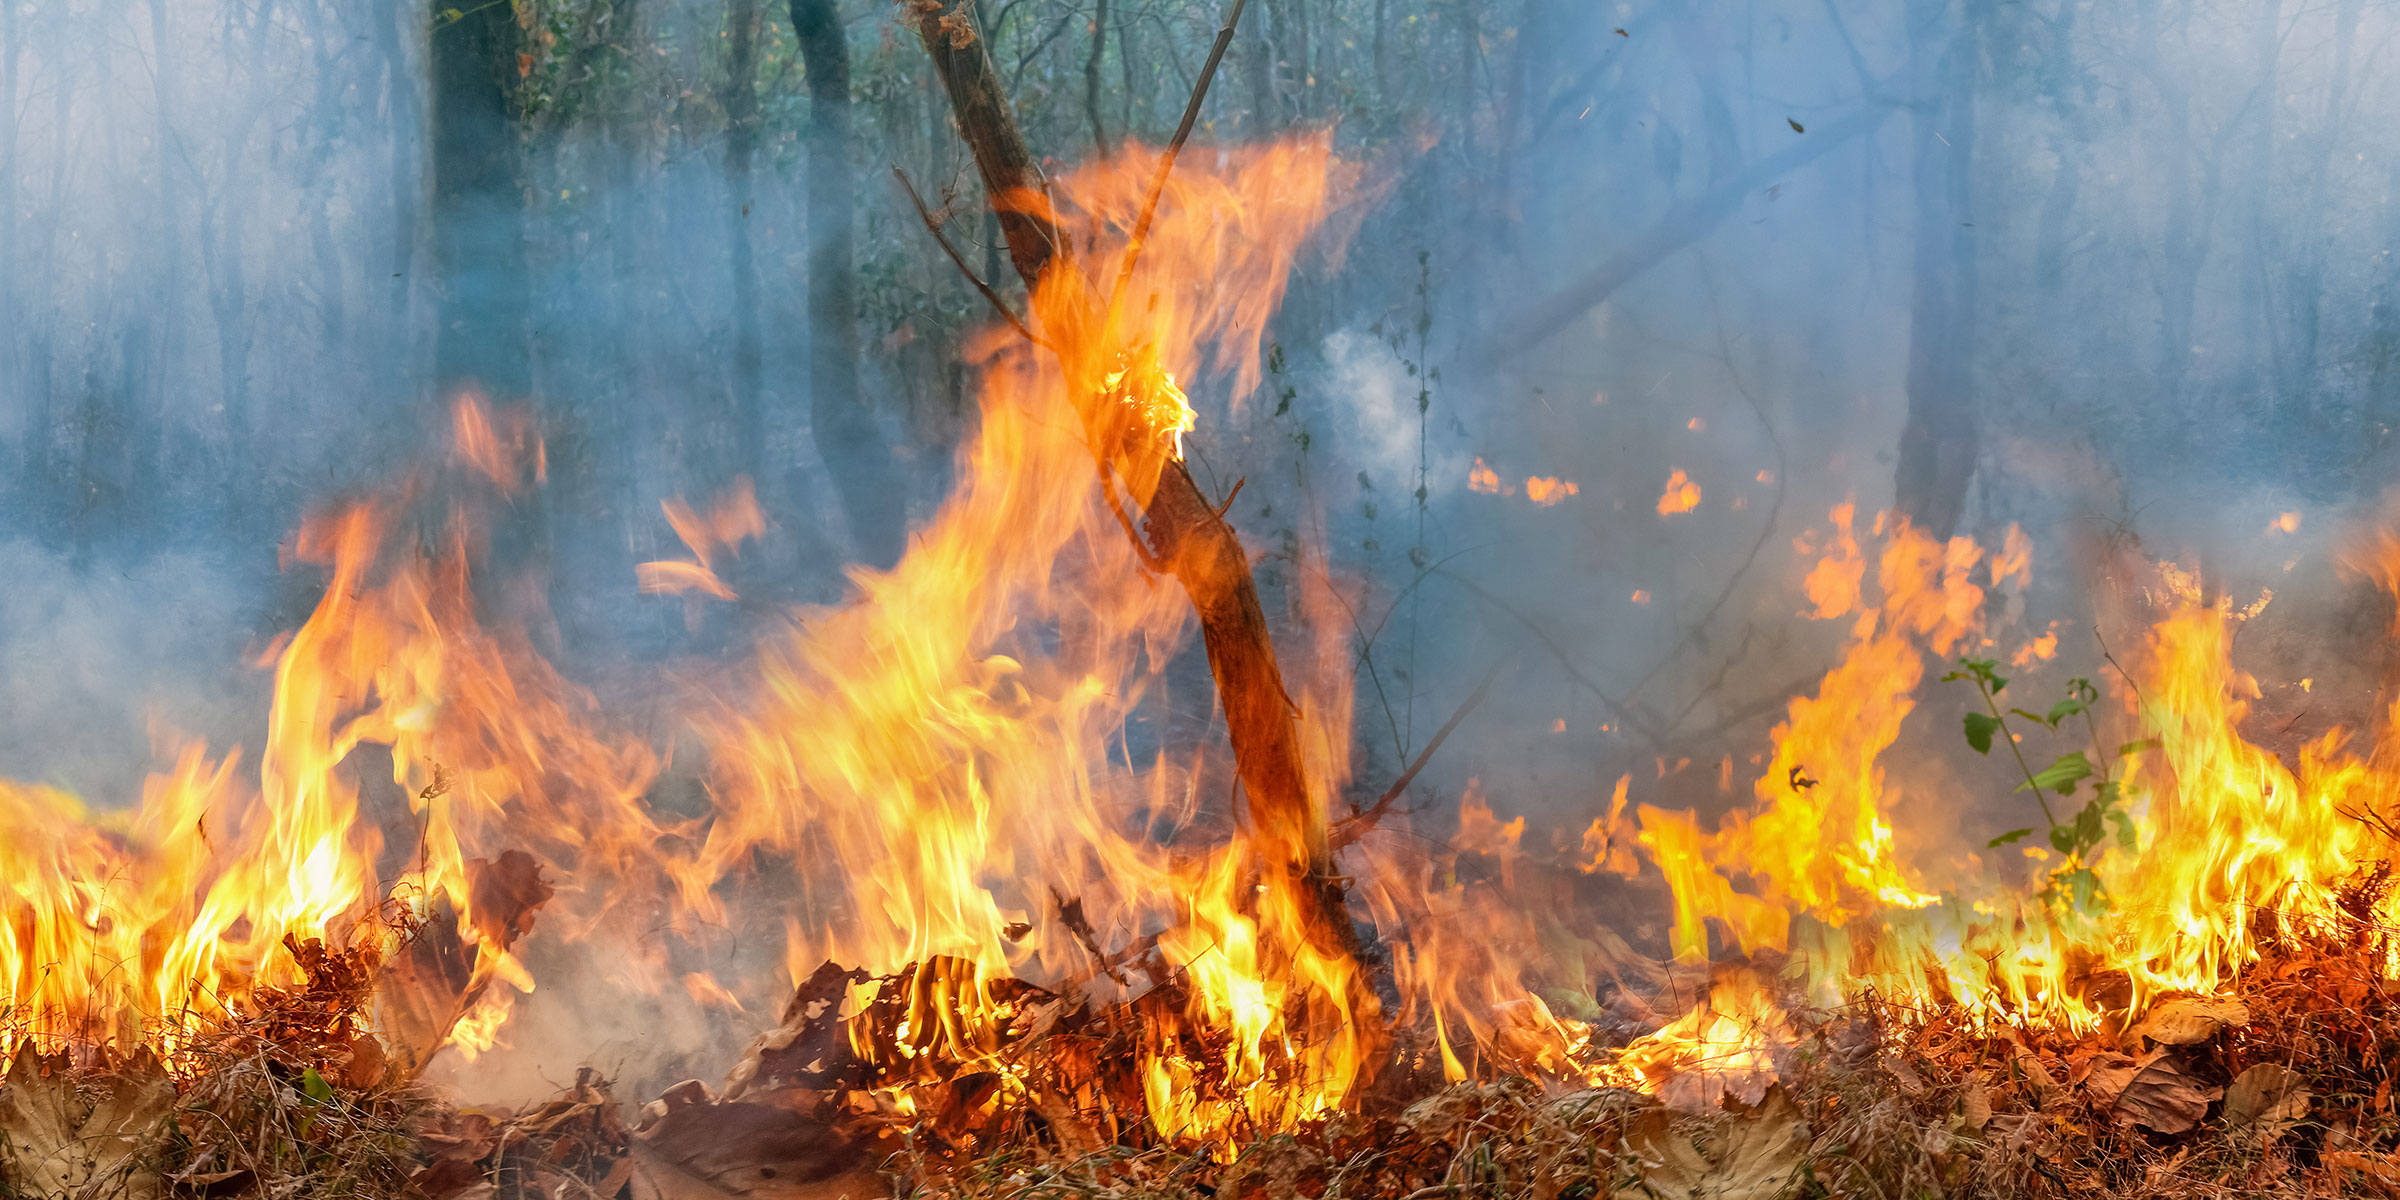 A line of flames consume underbrush in the Amazon rainforest